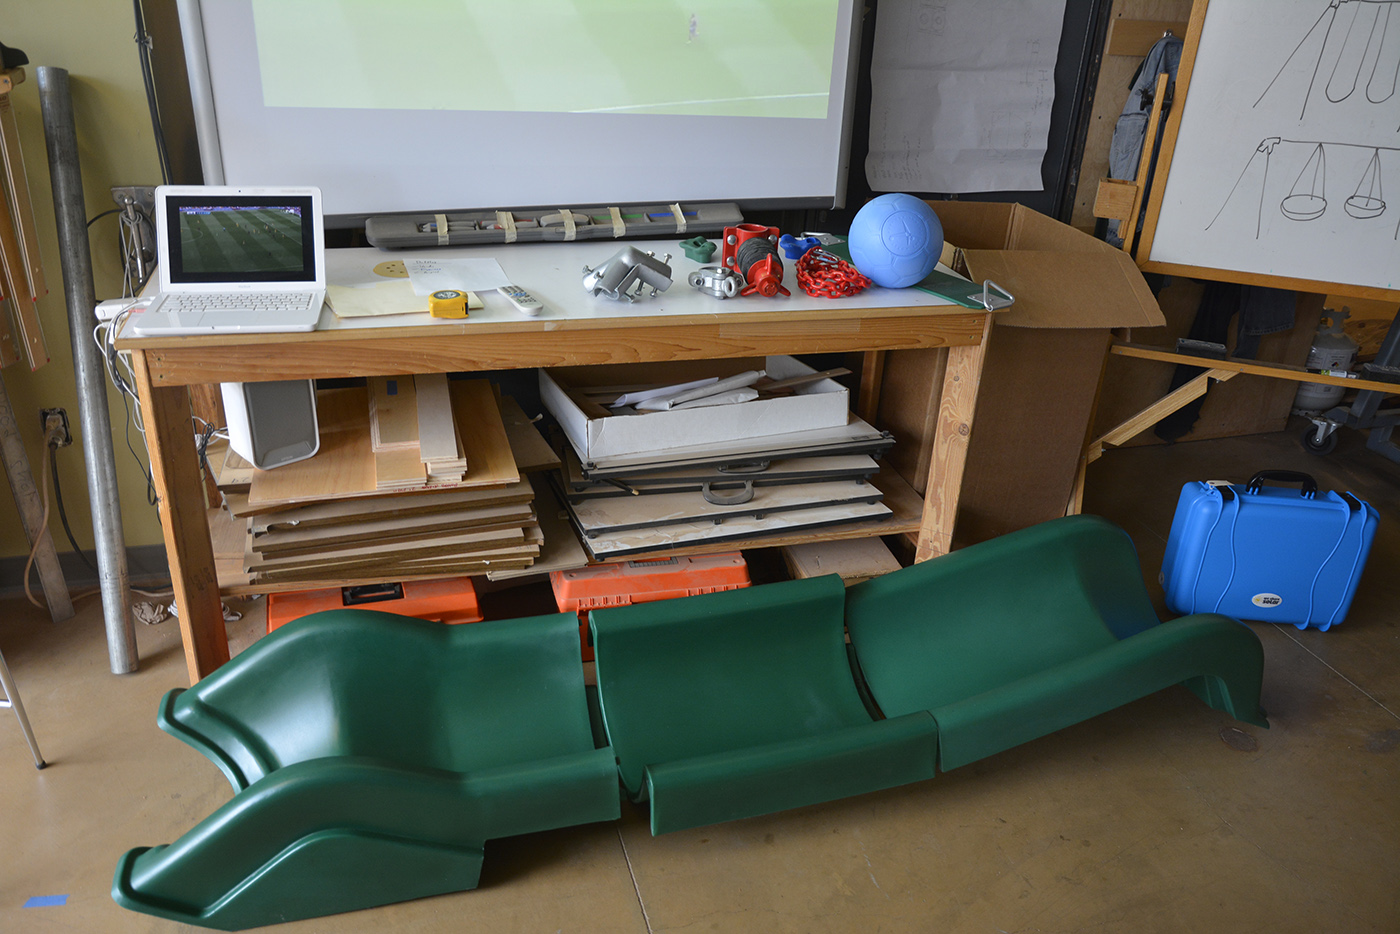 Some of the playground parts going with us.